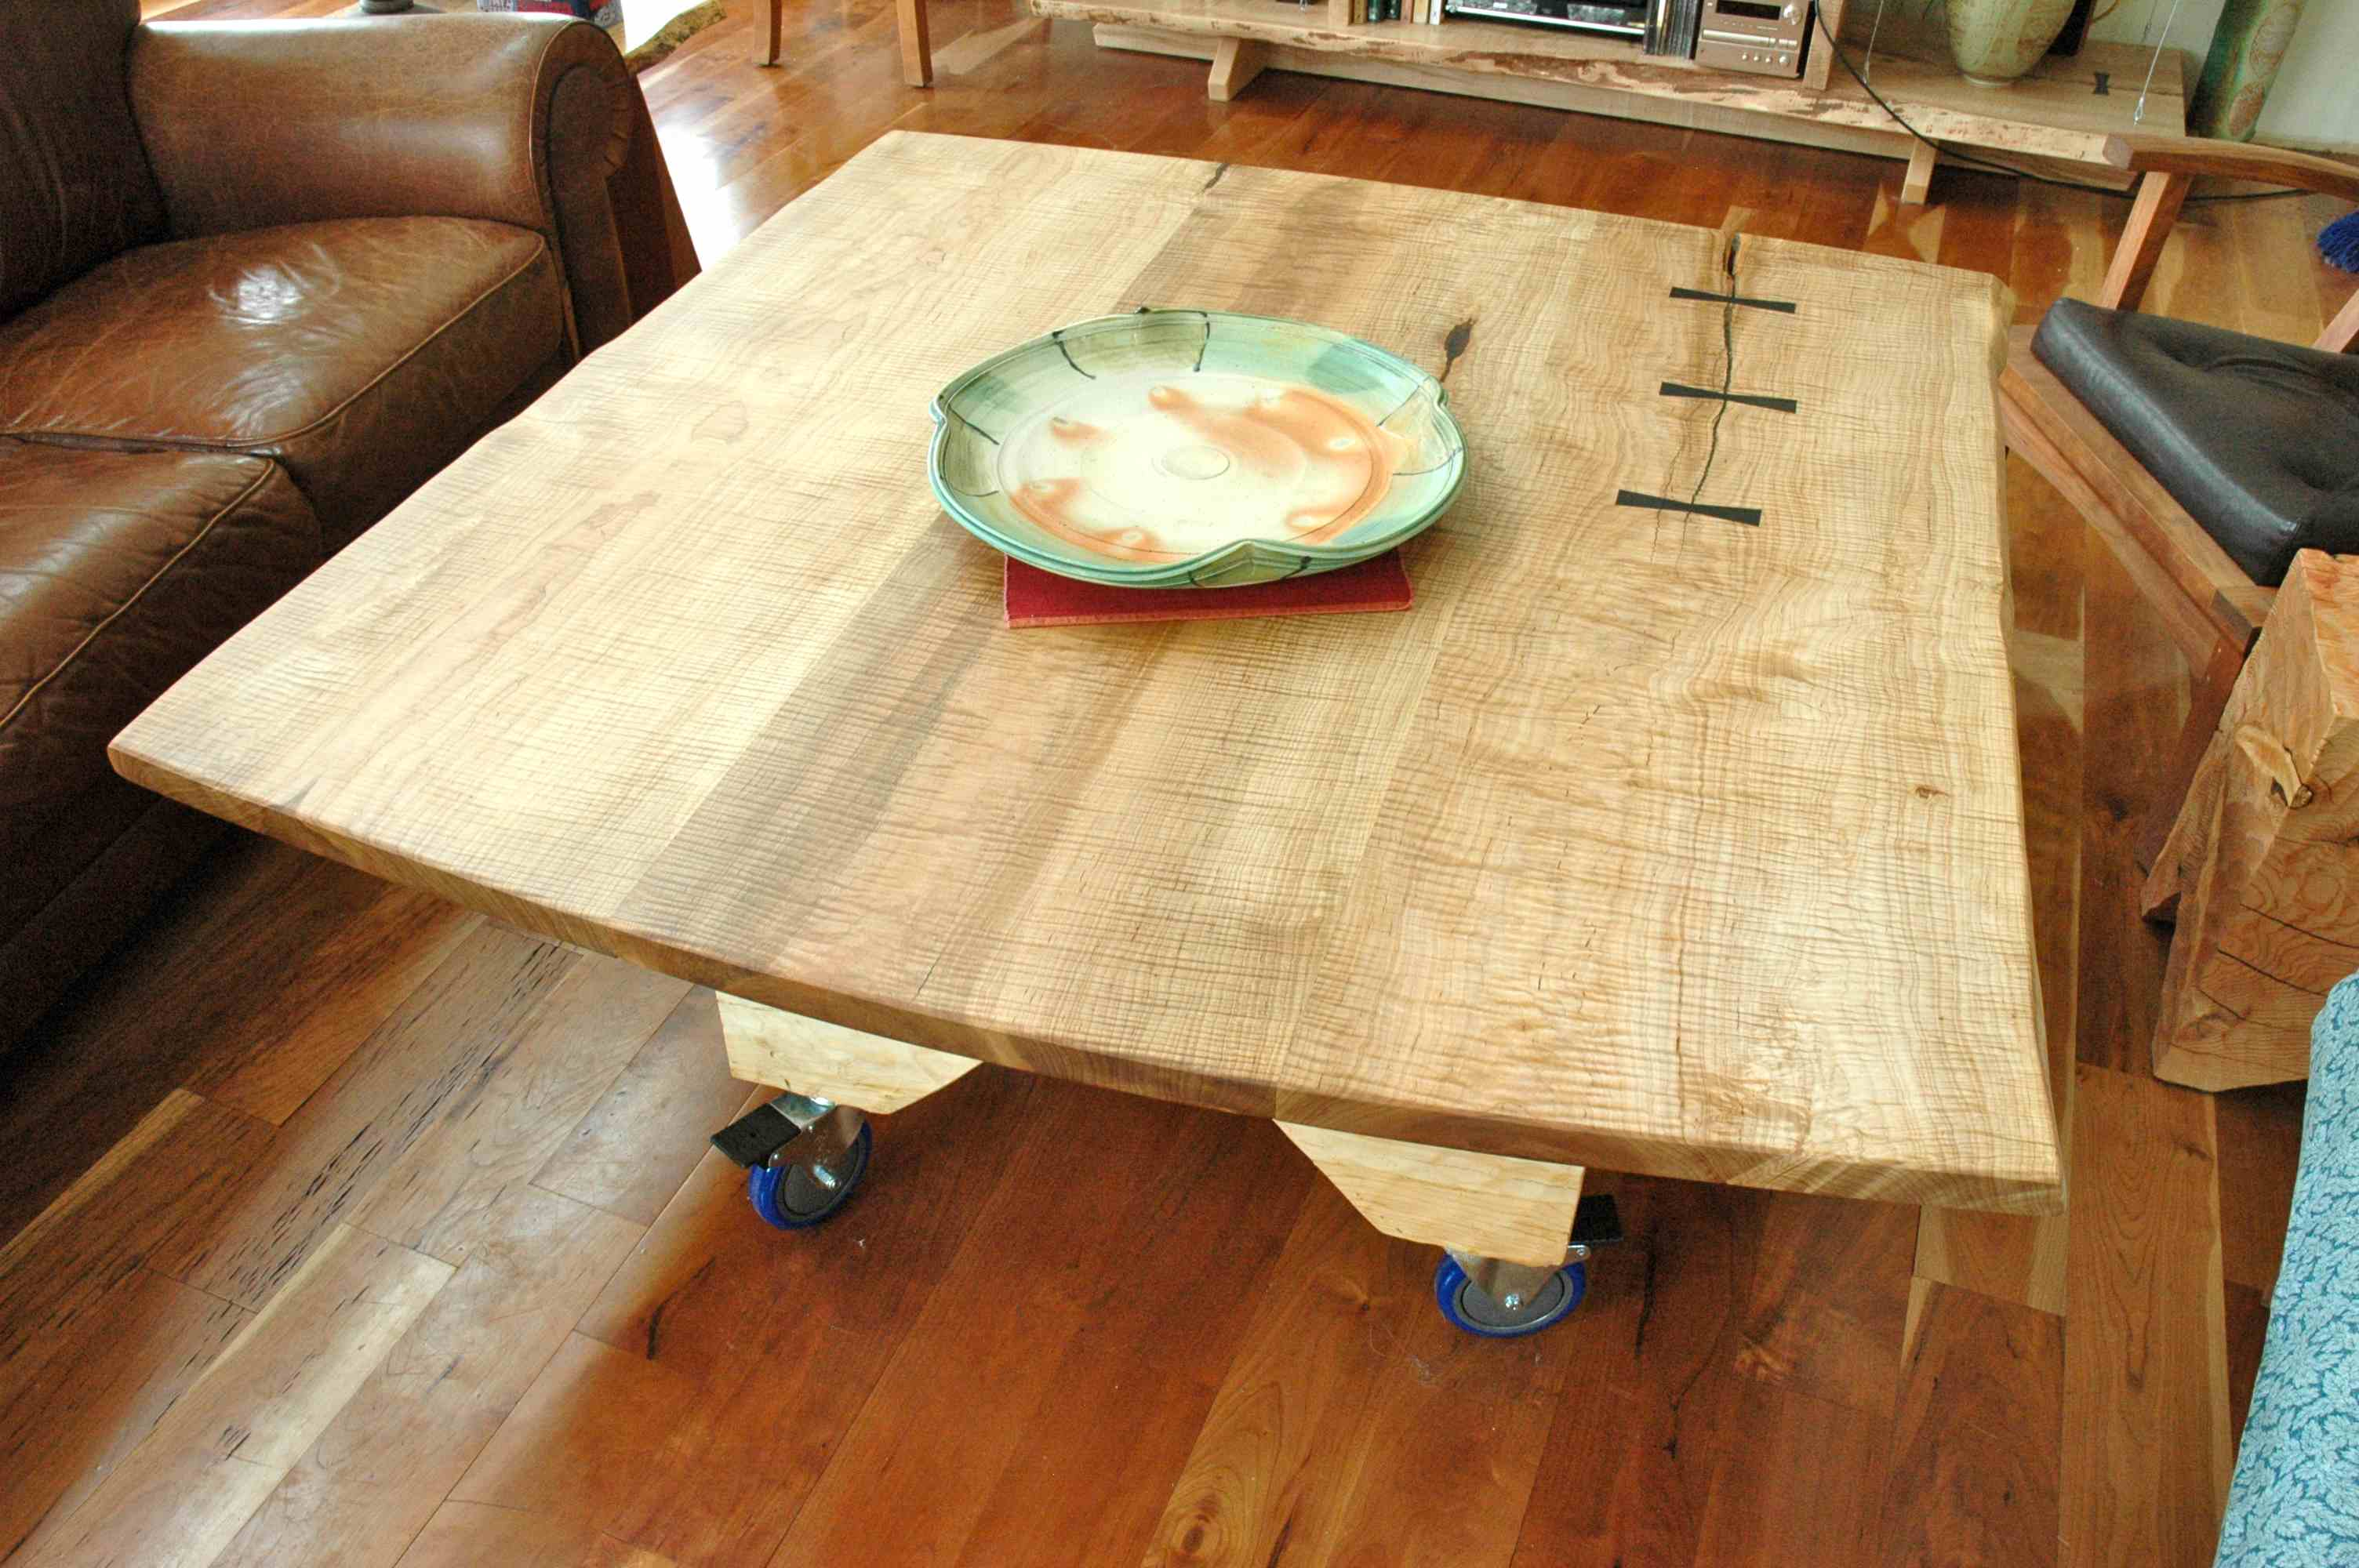 Rustic curly maple wood slab custom dining table with sculpted fir base and clean inlaid Ebony butterfly accents